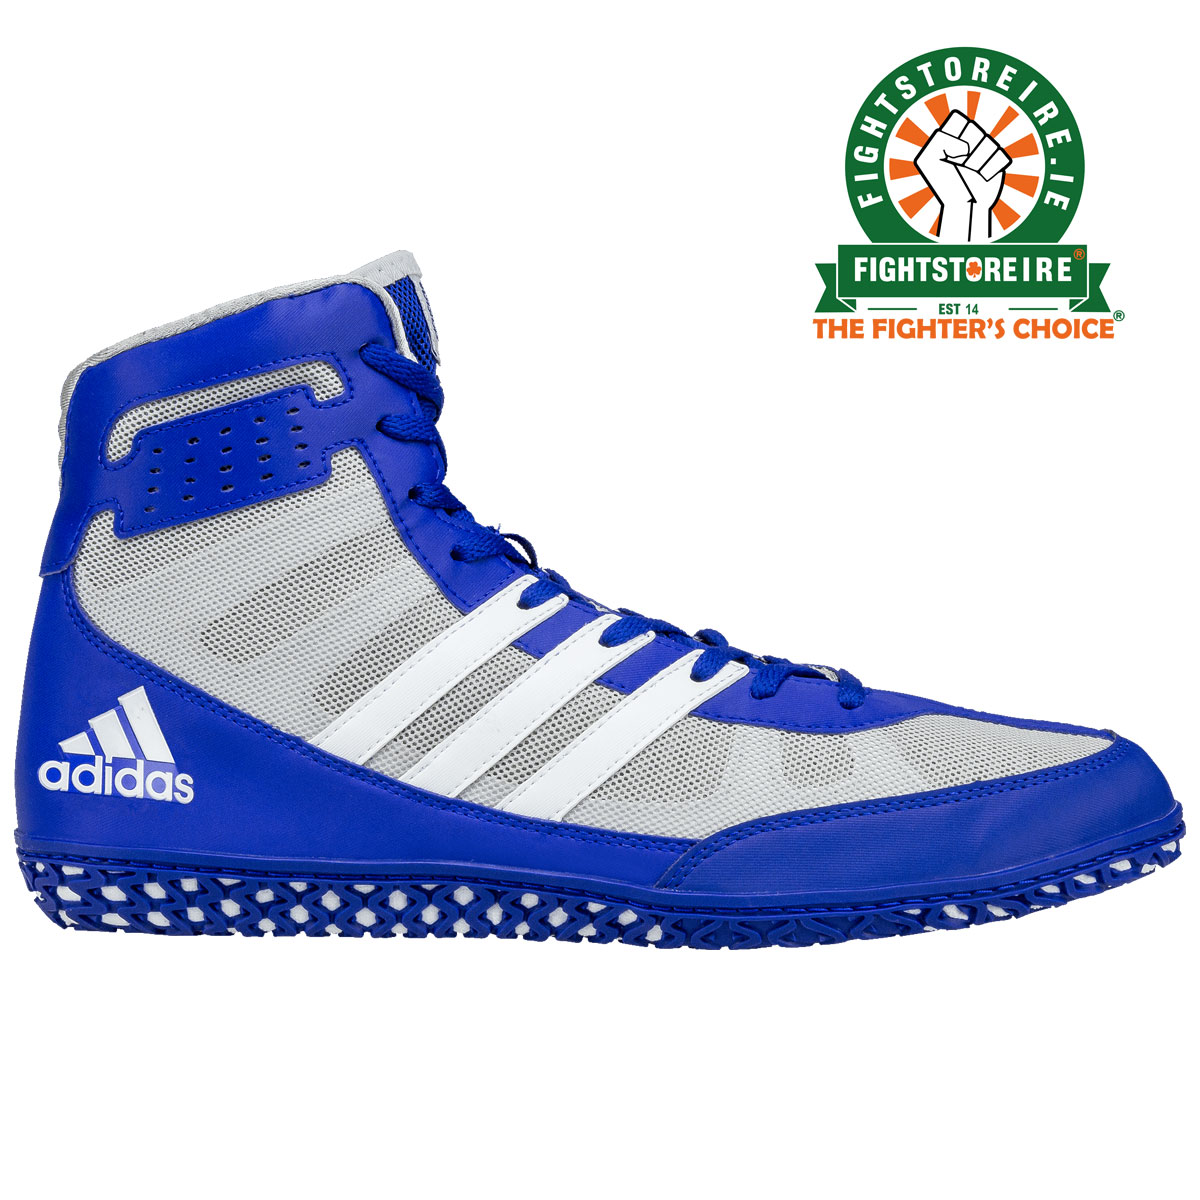 Adidas Mat Wizard 3 Wrestling Boots - Blue White - Fight Store IRELAND 5a3f134e5